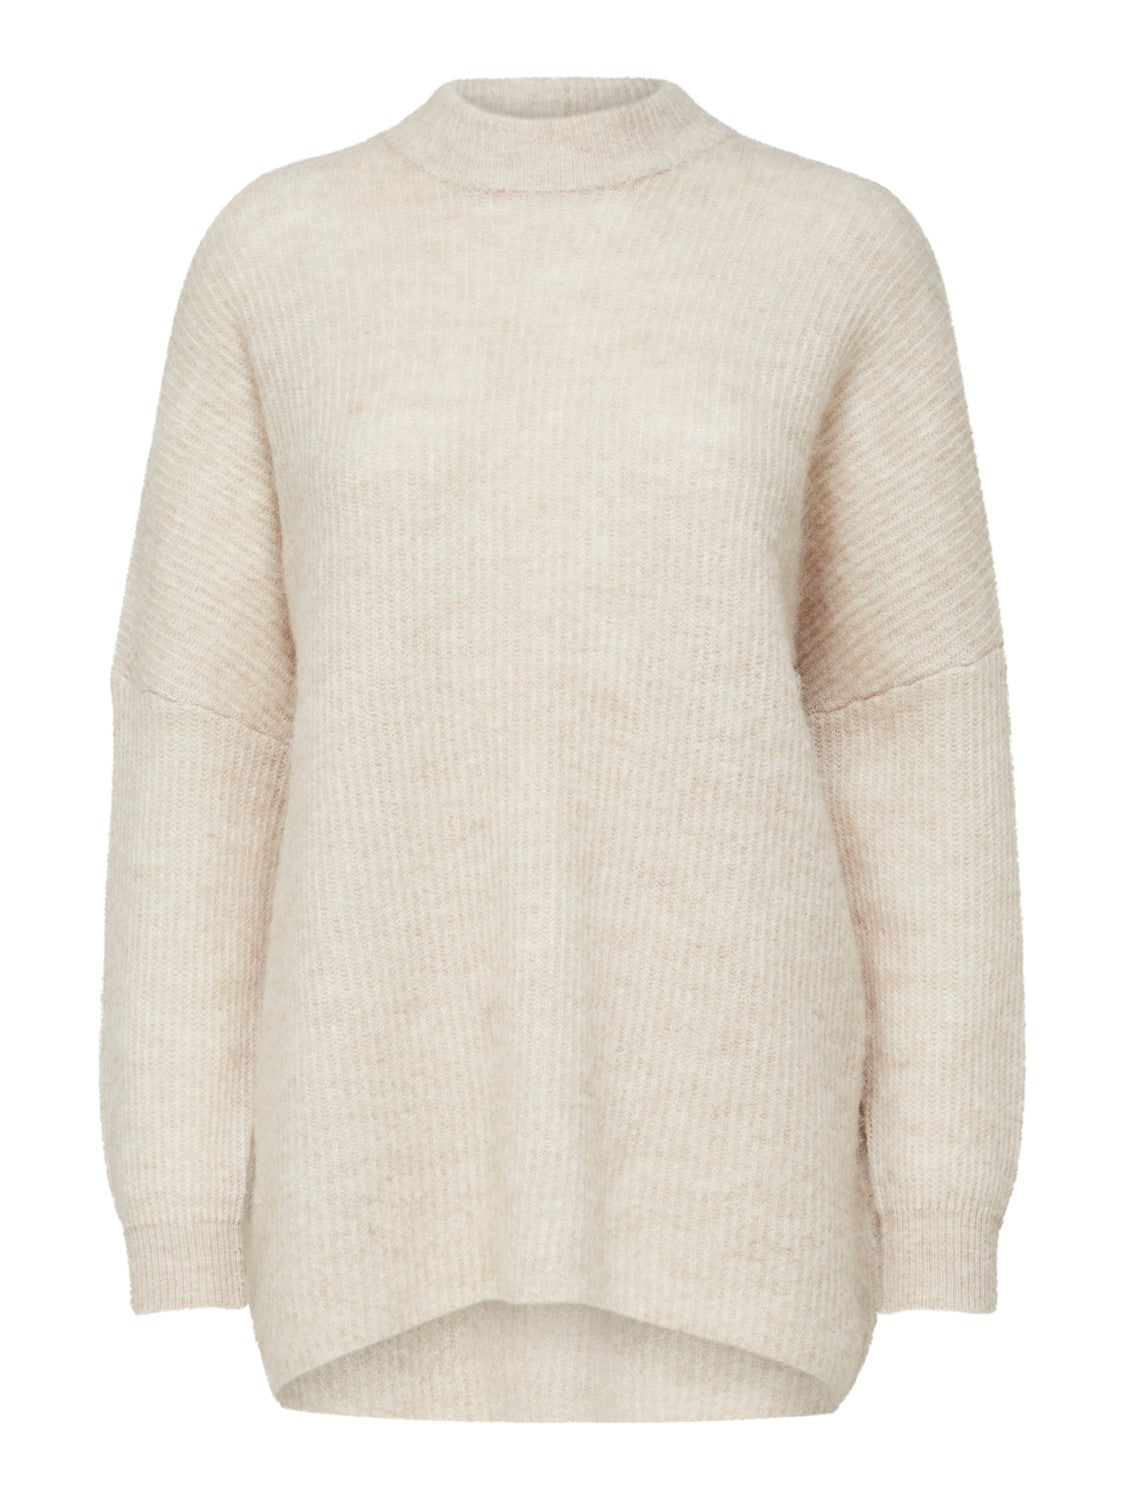 SLFLulu Enica knit O-neck